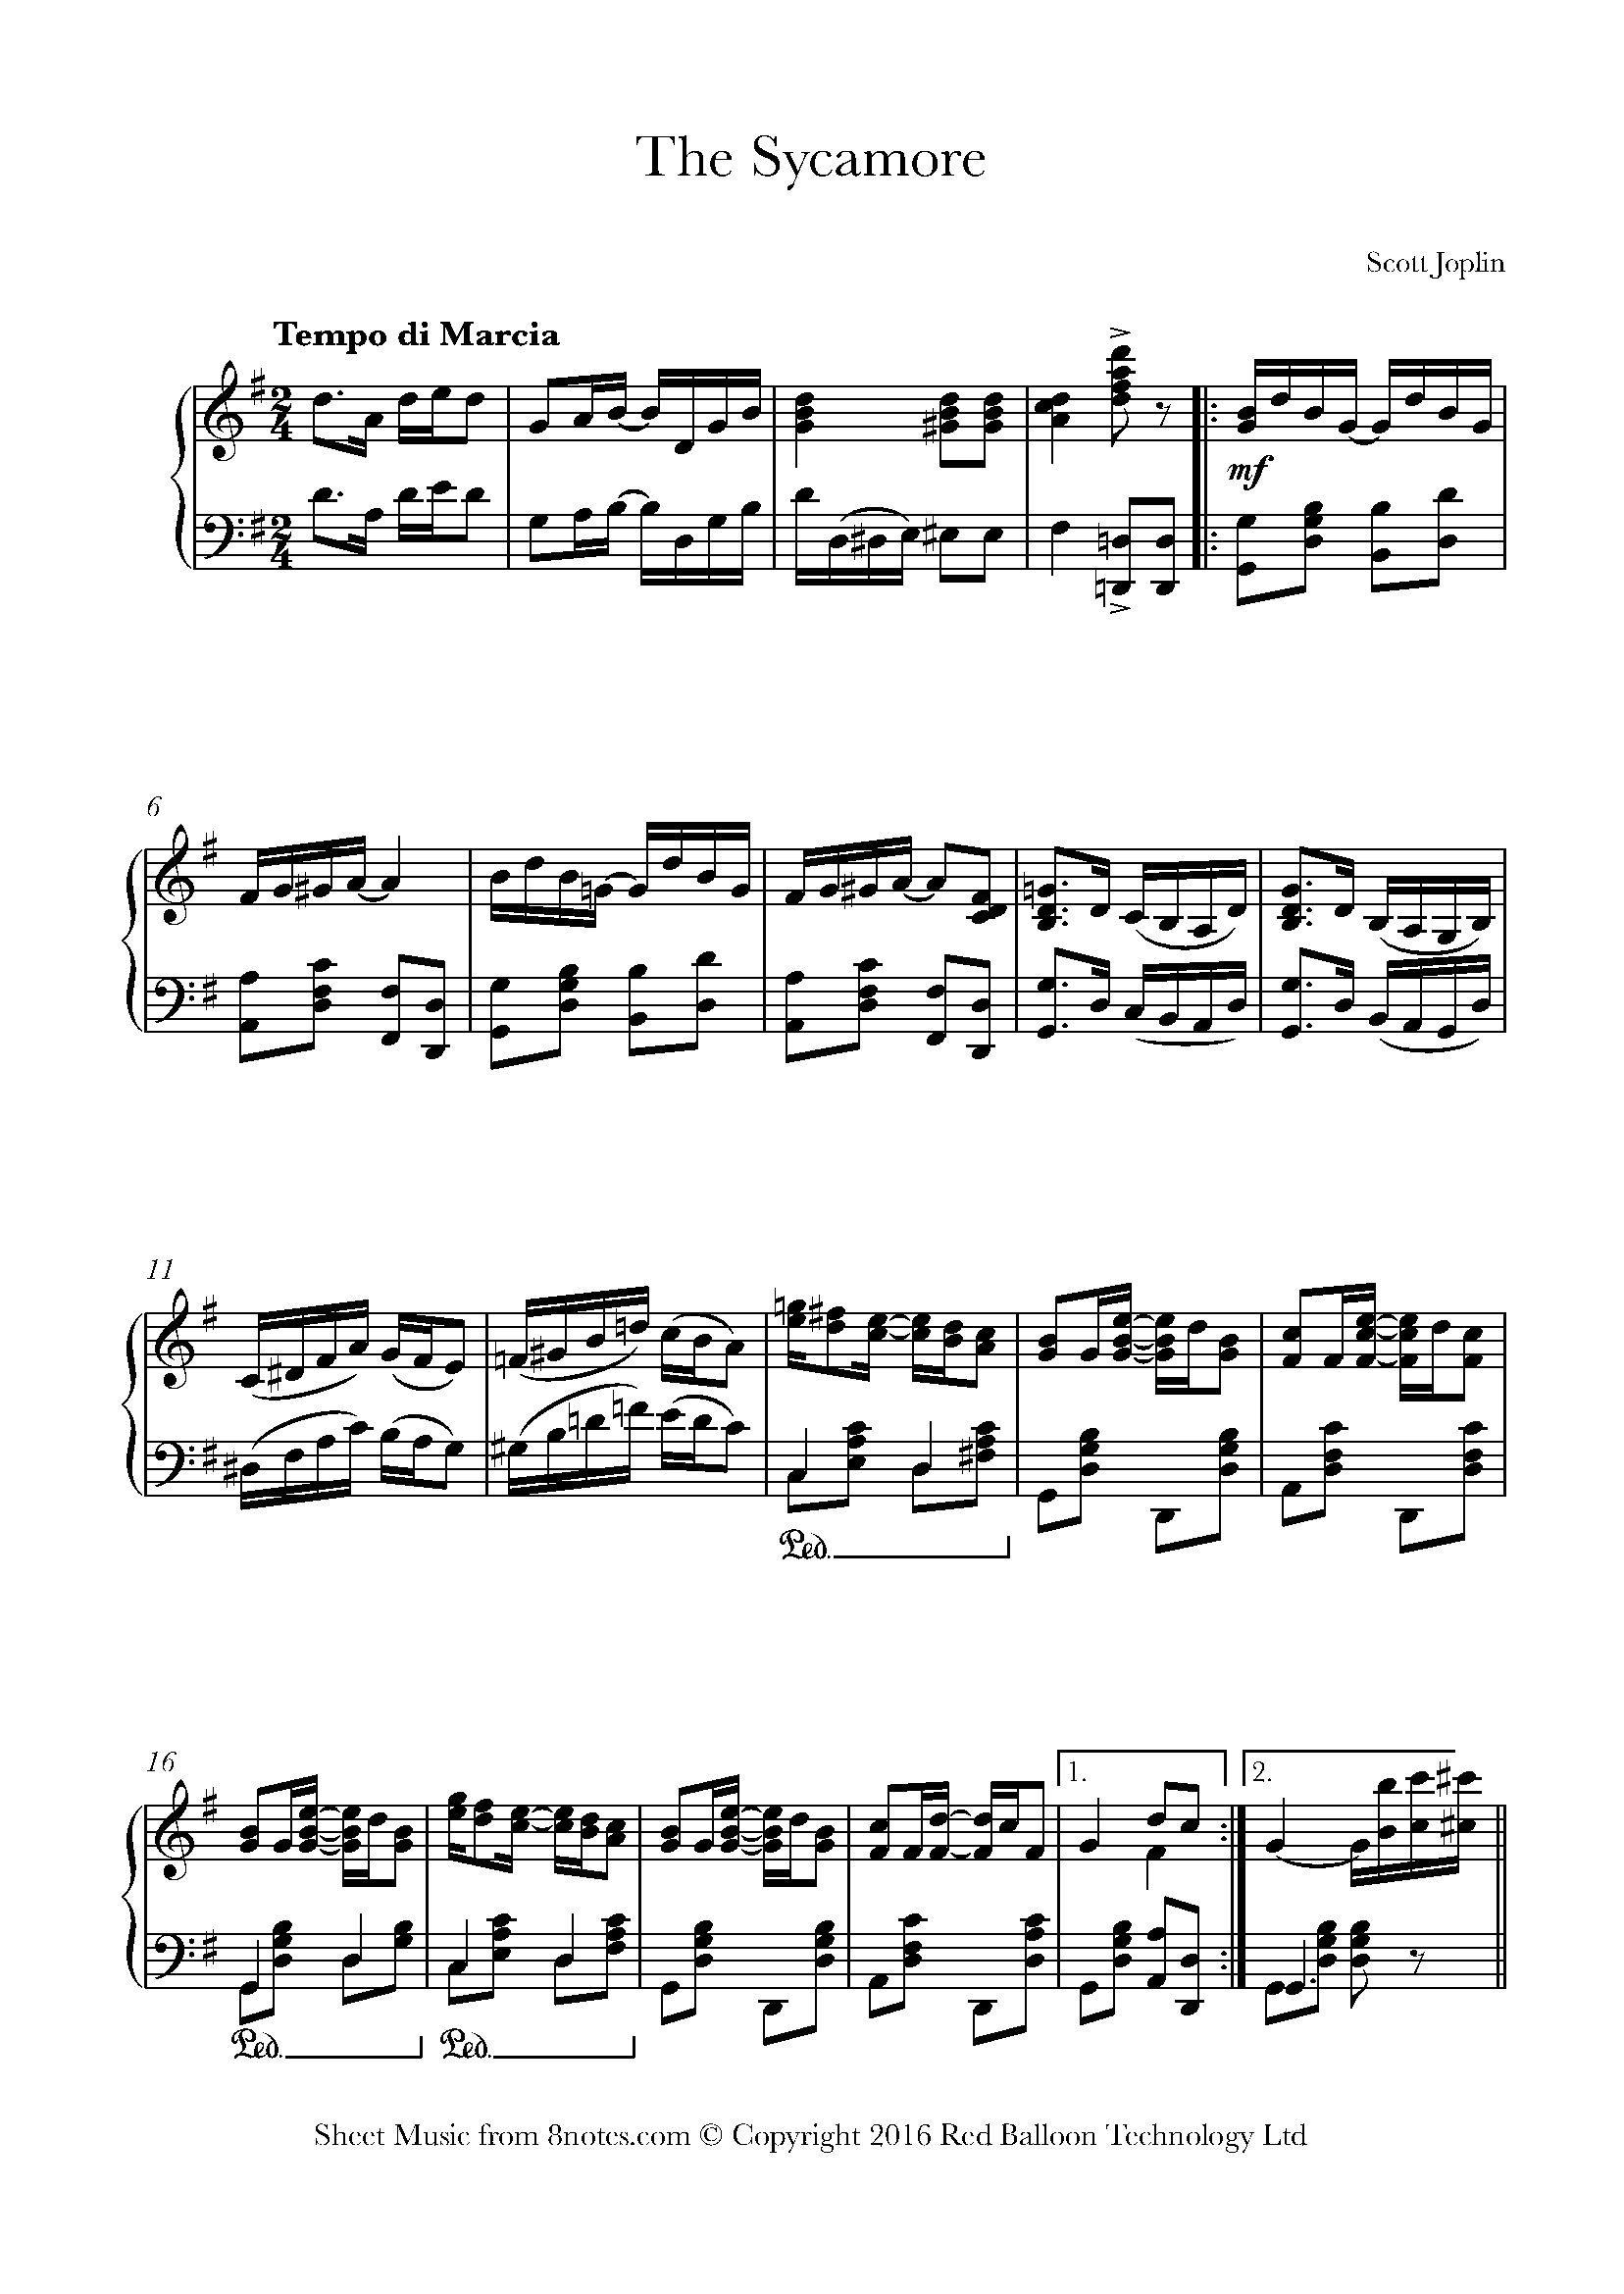 Free Piano Sheet Music, Lessons & Resources - 8notes com